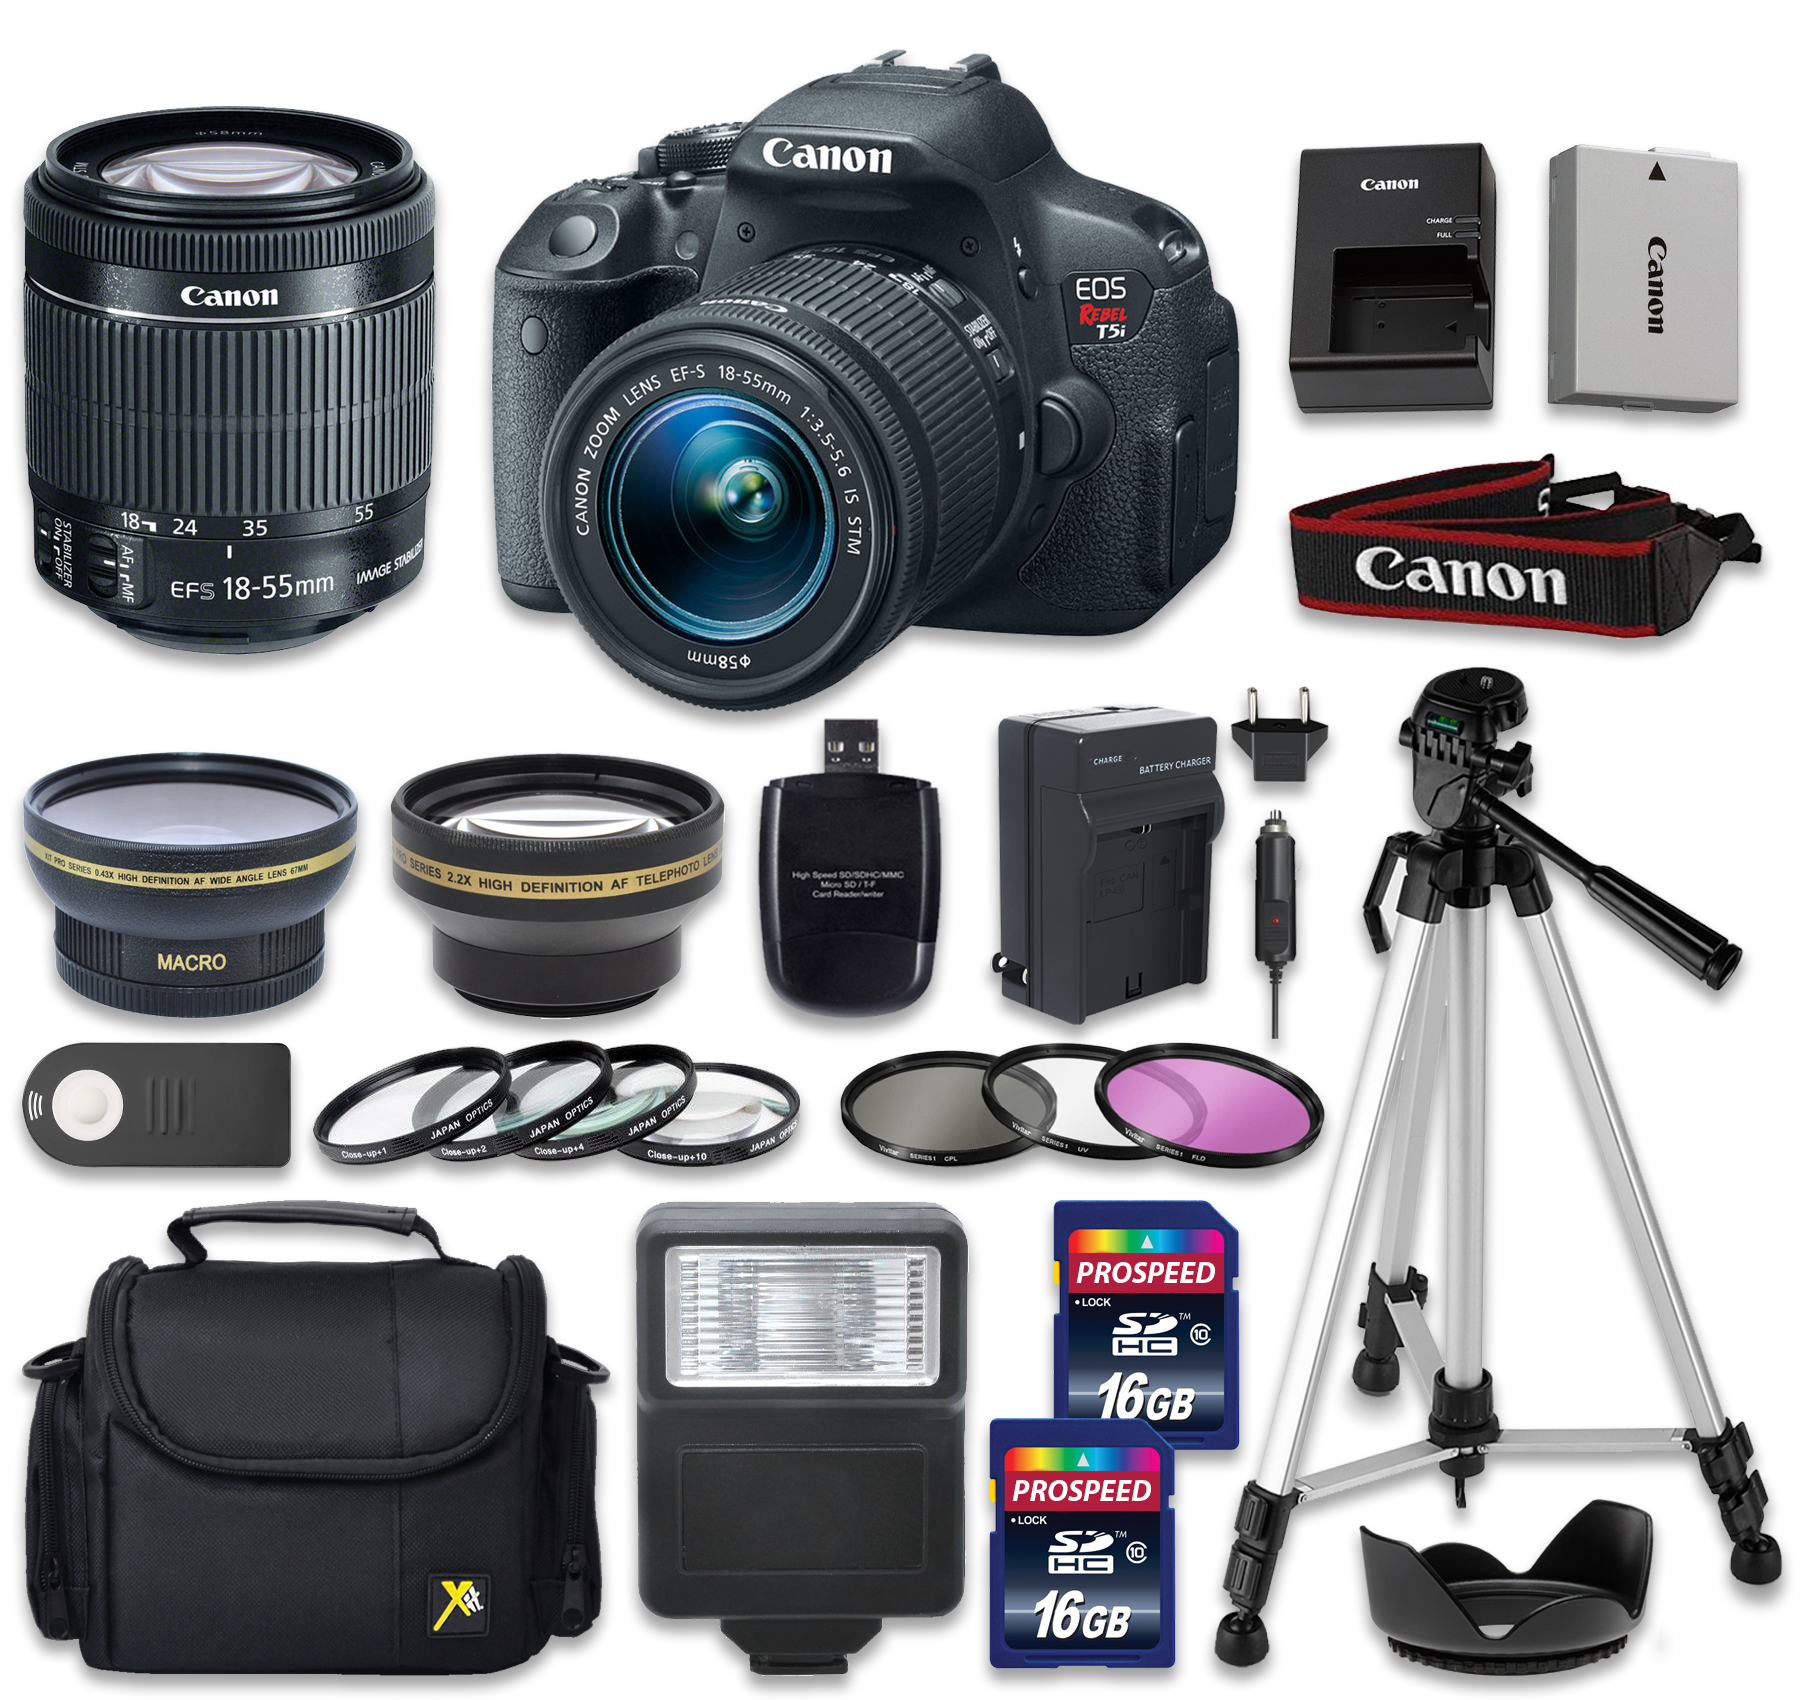 Canon EOS Rebel T5i 18.0 MP CMOS Digital Camera with EF-S 18-55